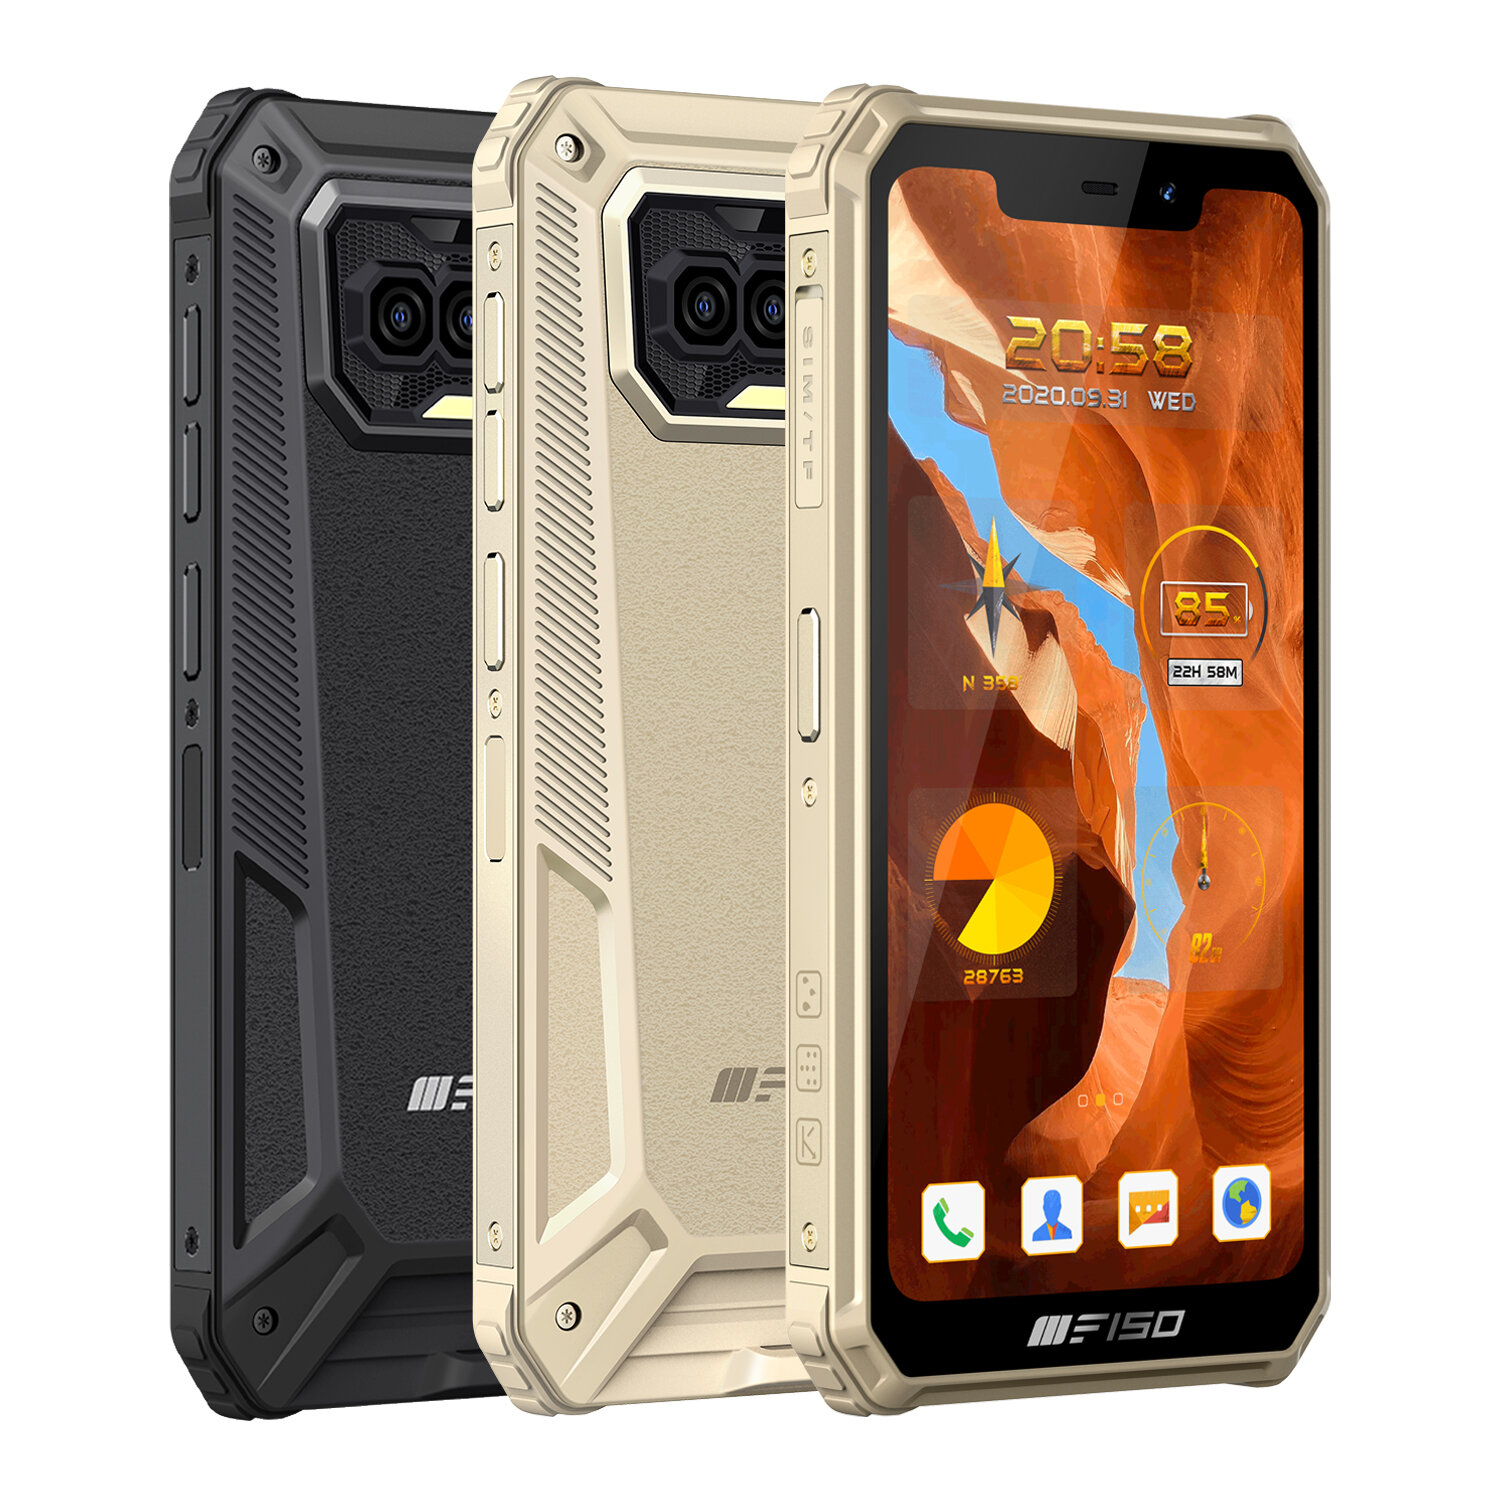 F150 B2021 Global Version 6GB 64GB Helio G25 NFC 8000mAh 5.86 inch HD+ IP68&IP69K Waterproof Android 10 13MP Quad Rear Camera 4G Smartphone